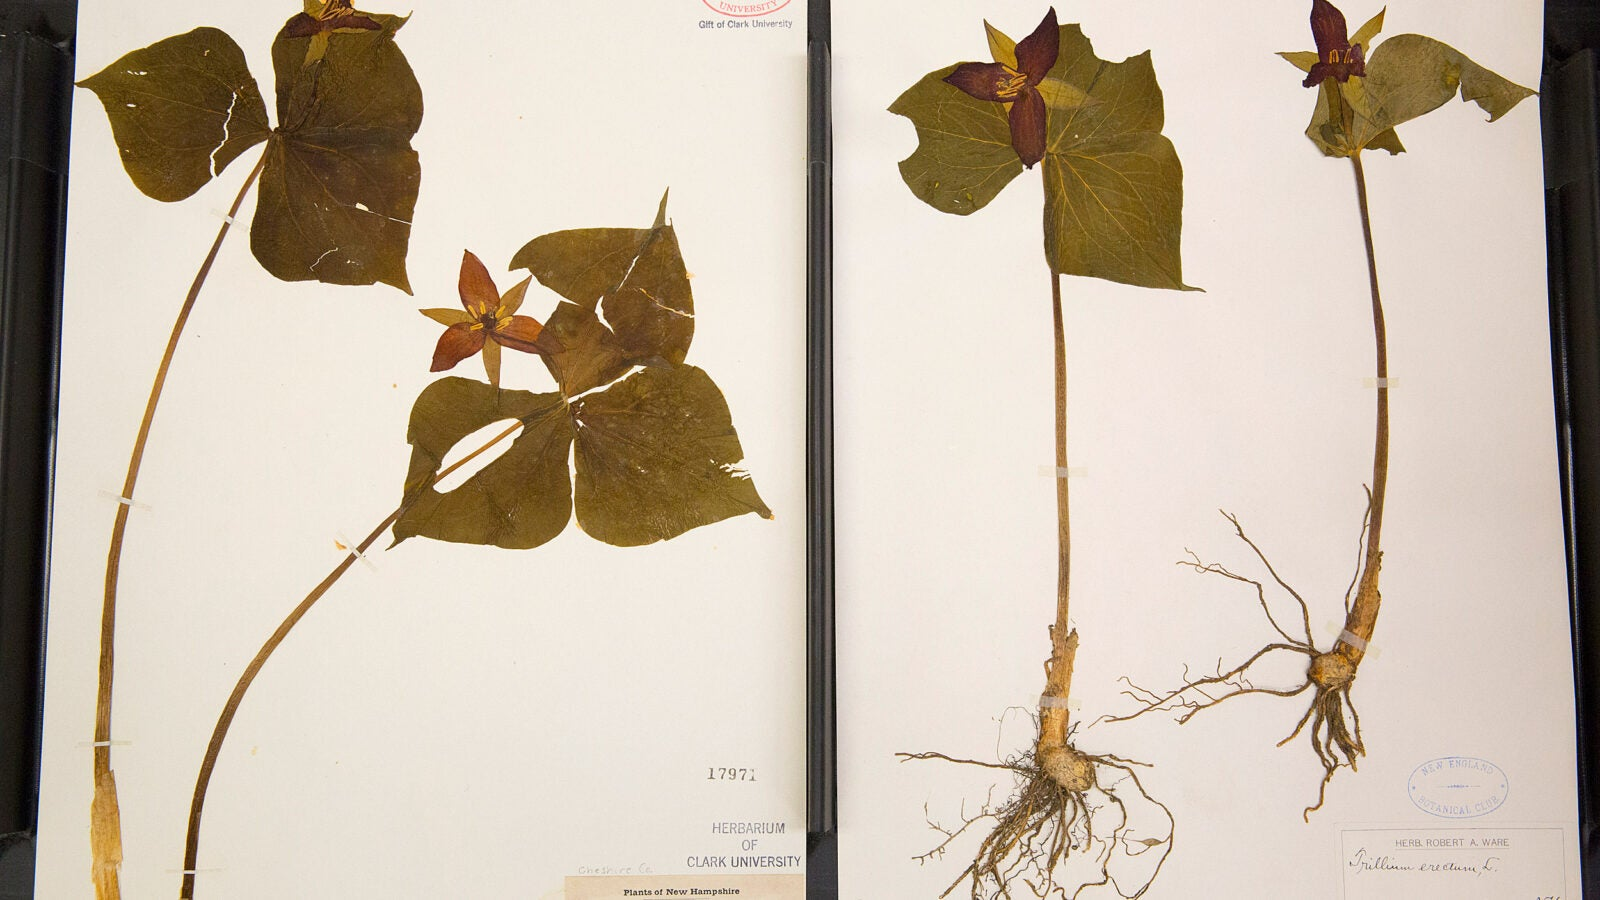 Trillium specimens of Henry David Thoreau, from New Hampshire.